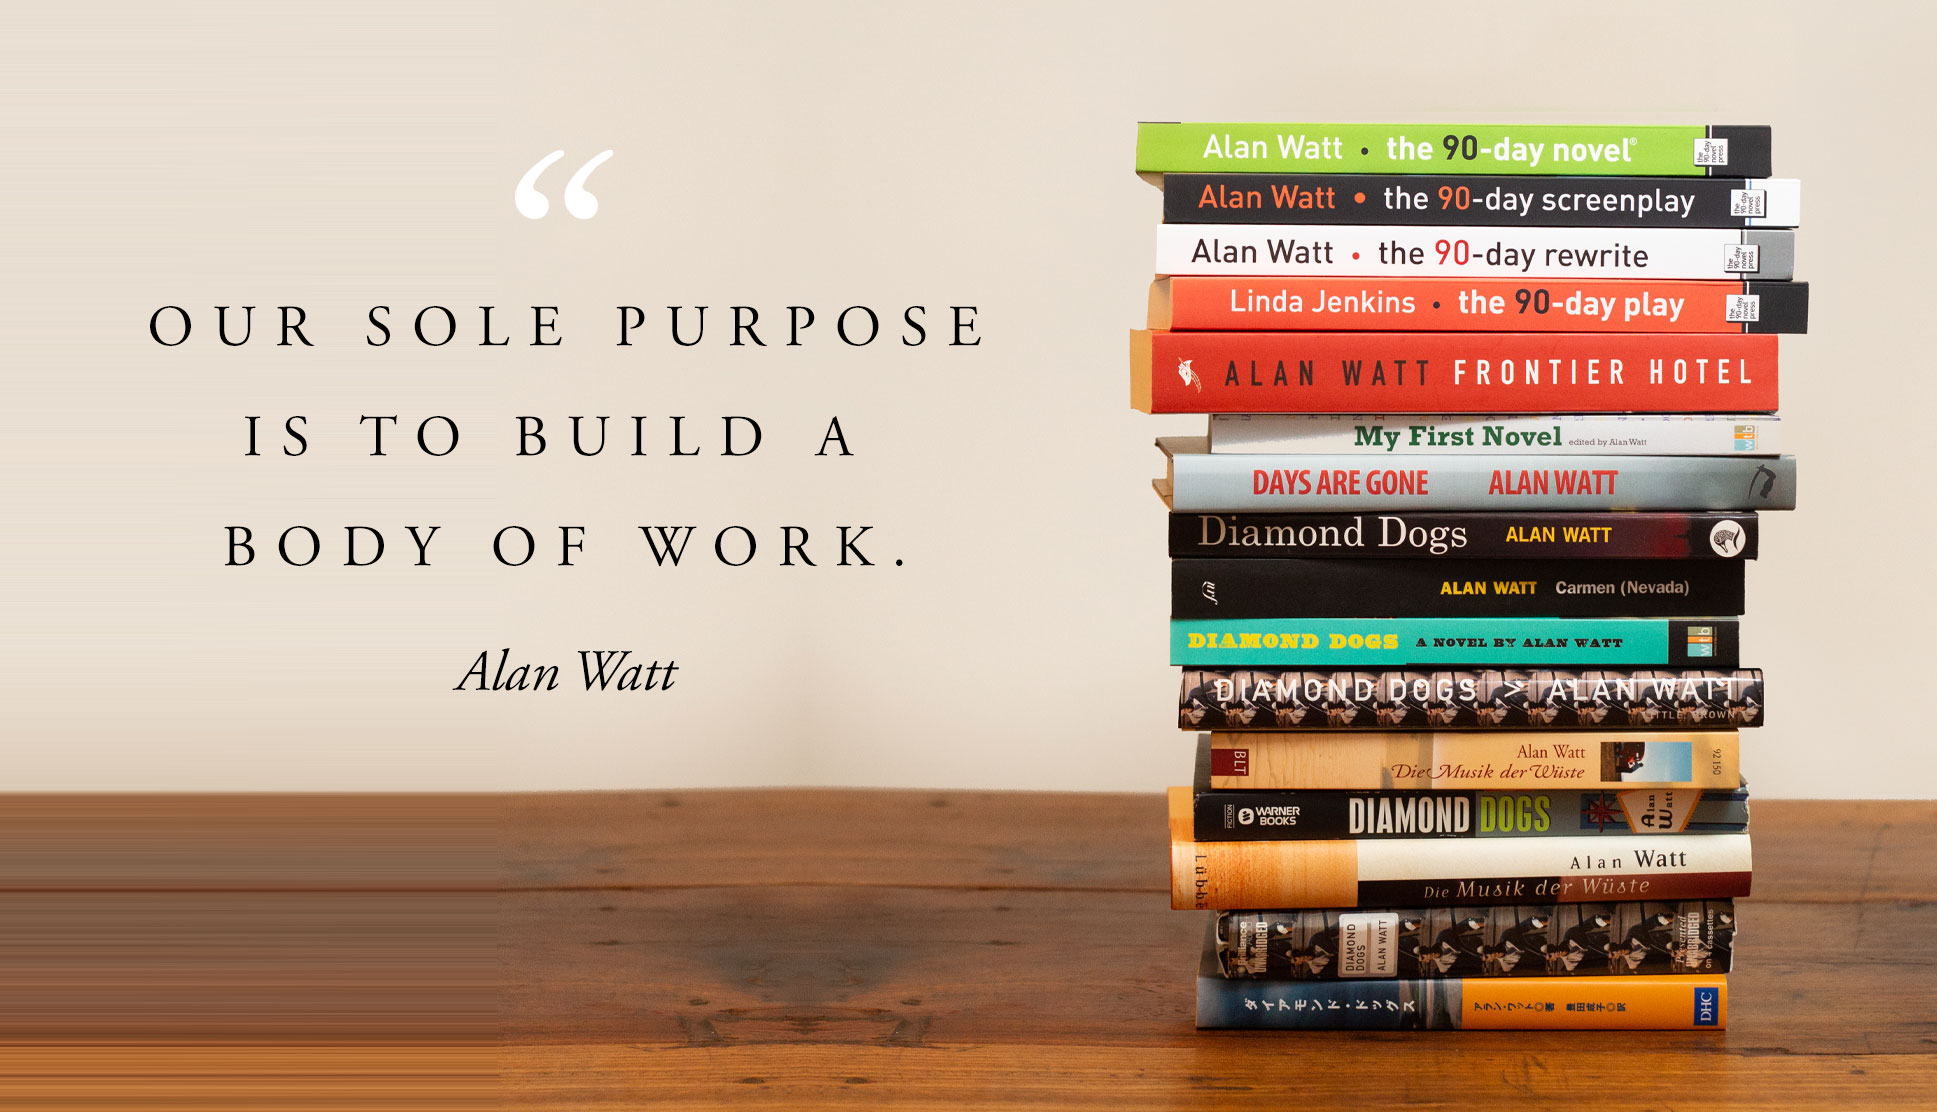 Our sole purpose is to build a body of work - Alan Watt